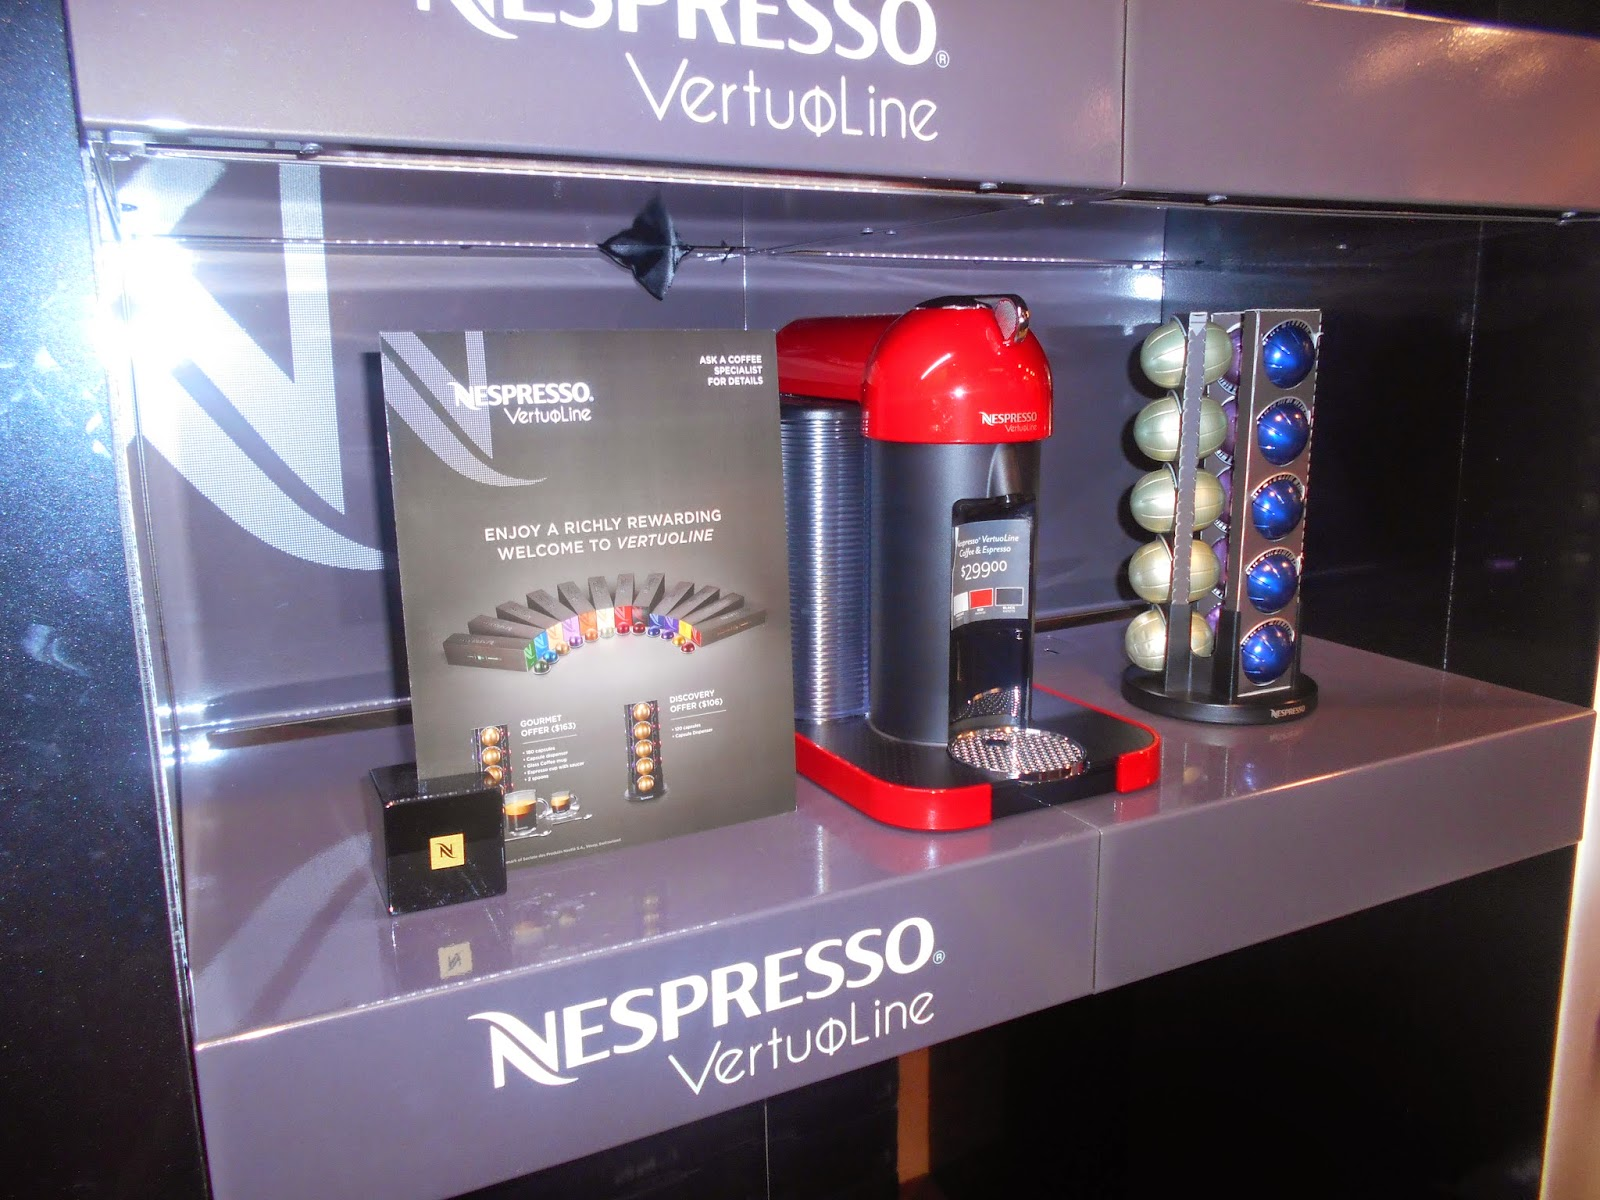 nespresso marketing case study Nespresso: case study topics: awareness nespresso (innovation) 1 what is nespresso's customer value proposition customer value proposition: always start.